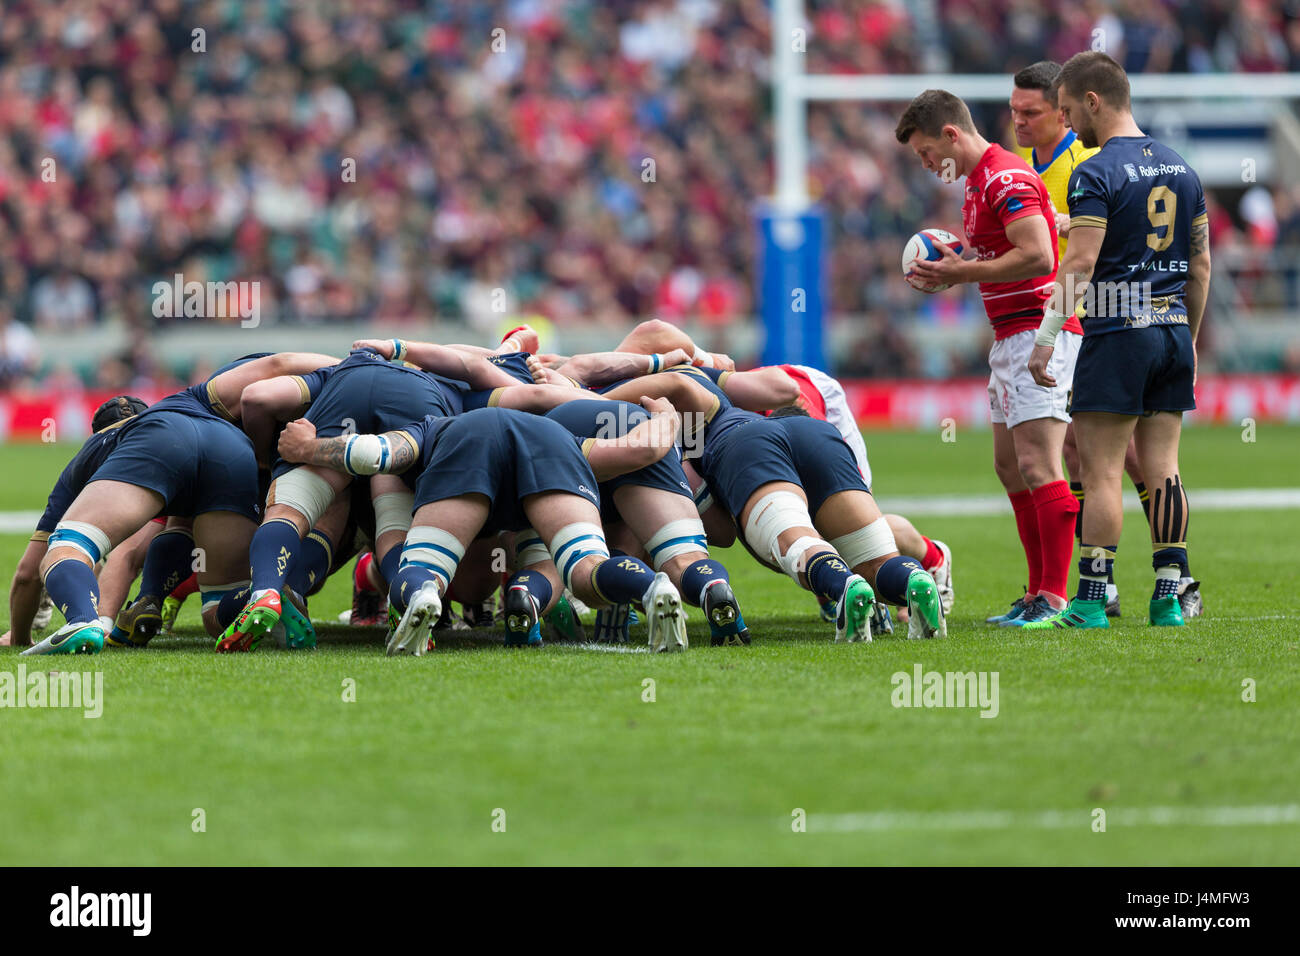 A rugby scrum is ready for the scrum half to put the ball in - Stock Image